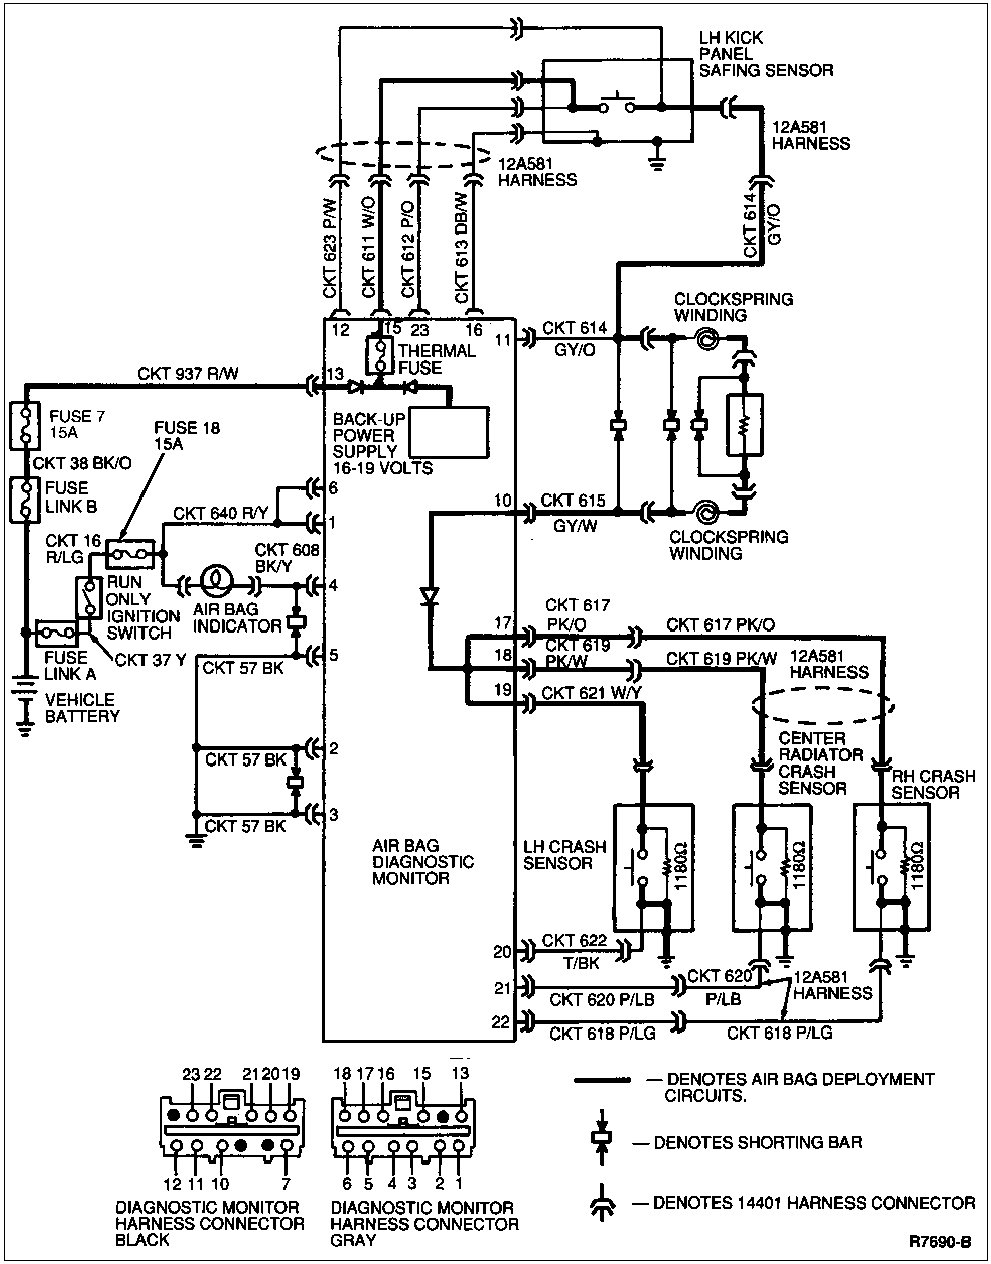 1969 Mustang Heater Control Wiring Diagram Private Sharing About 2010 Airbag Diy Enthusiasts Diagrams U2022 Rh Broadwaycomputers Us